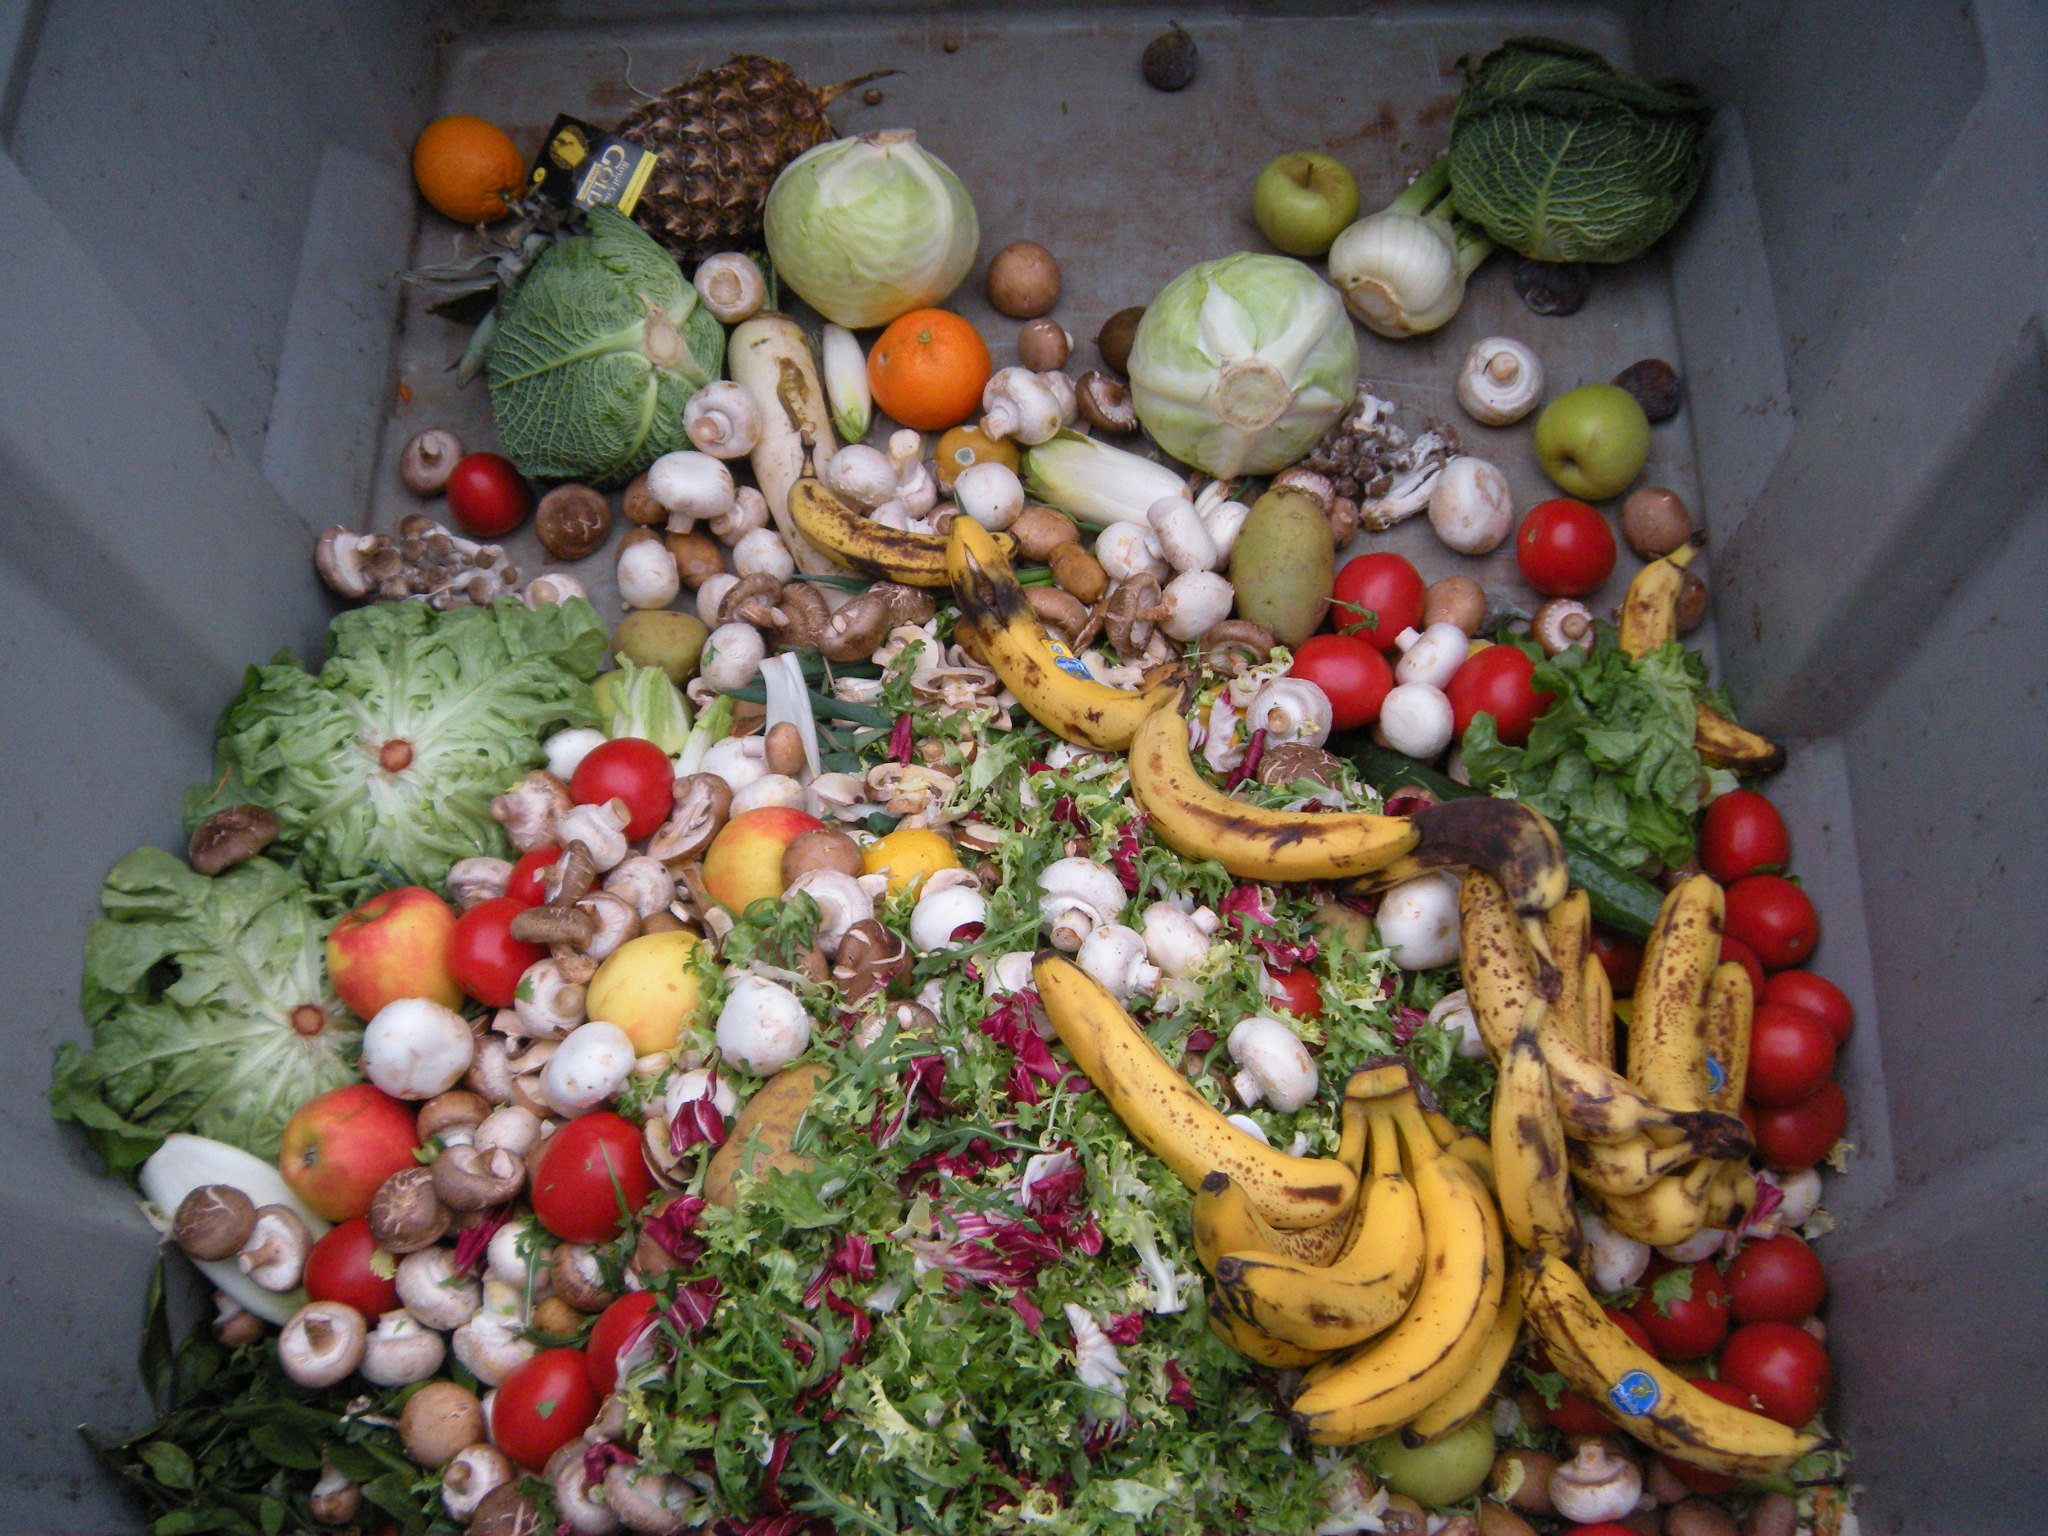 Wasted food and vegetables in the a garbage bin in the UK